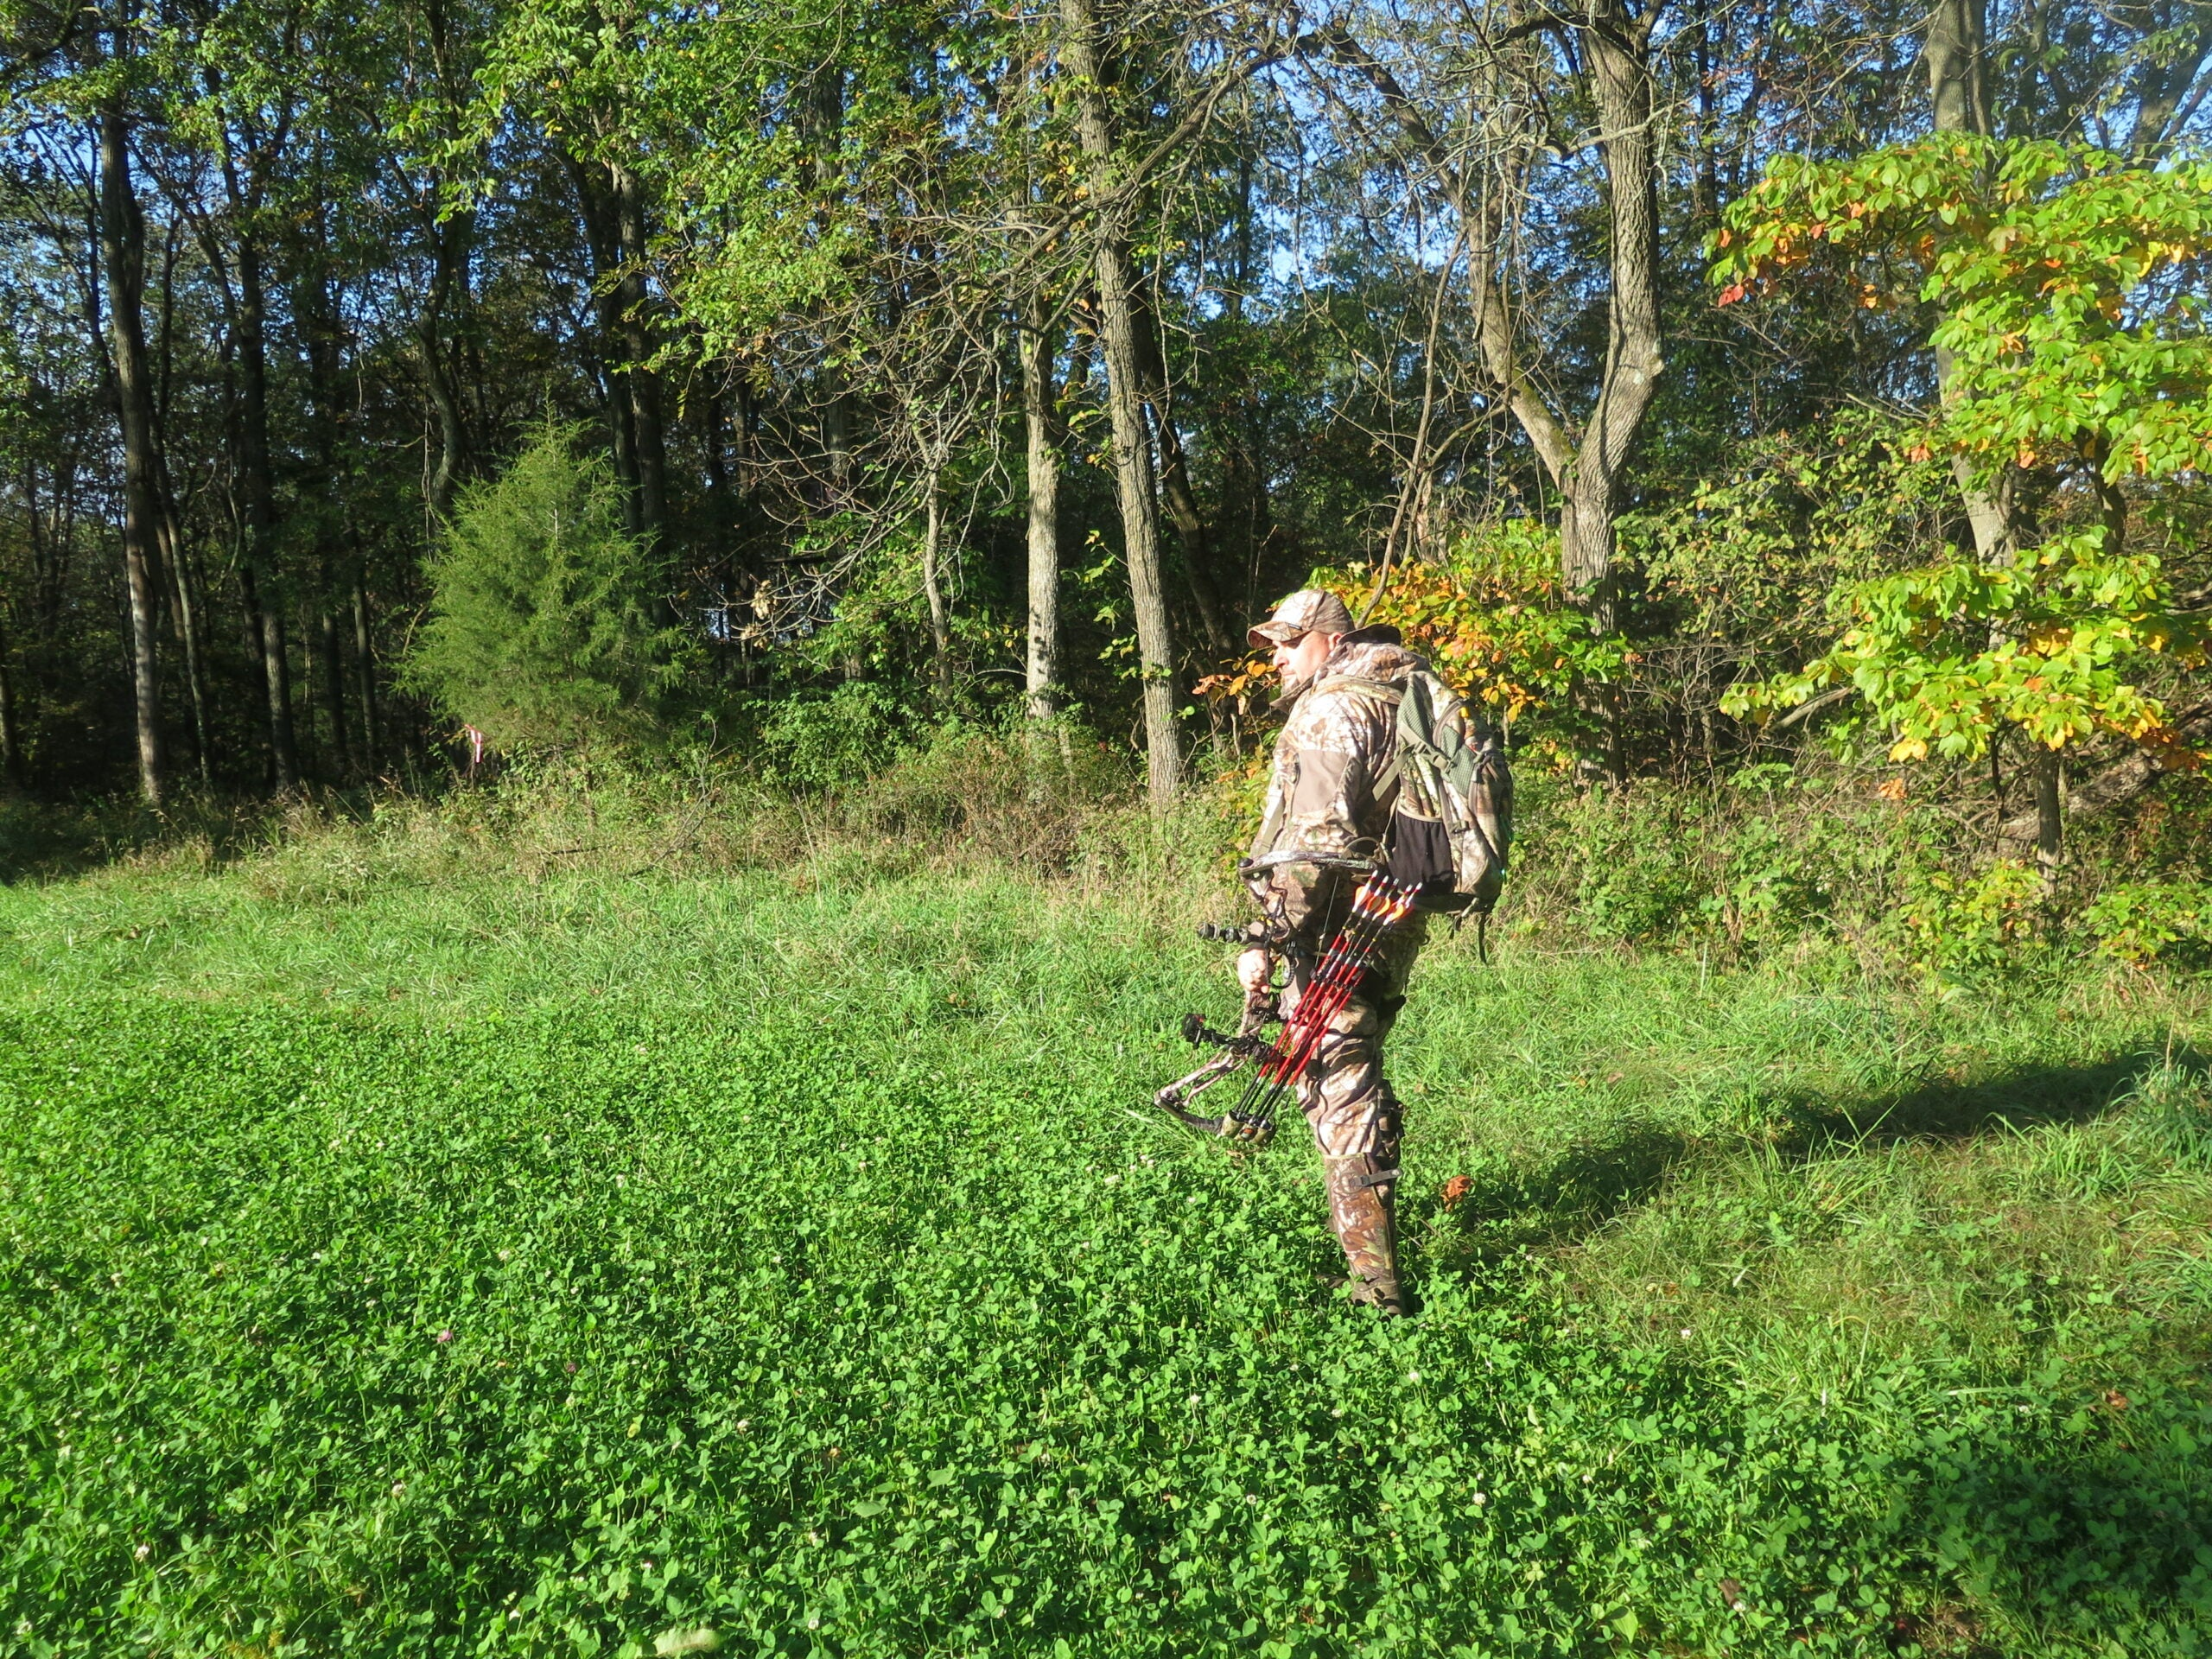 Bowhunting Tactics: Why Field Edges are Perfect for an Opening-Day Ambush